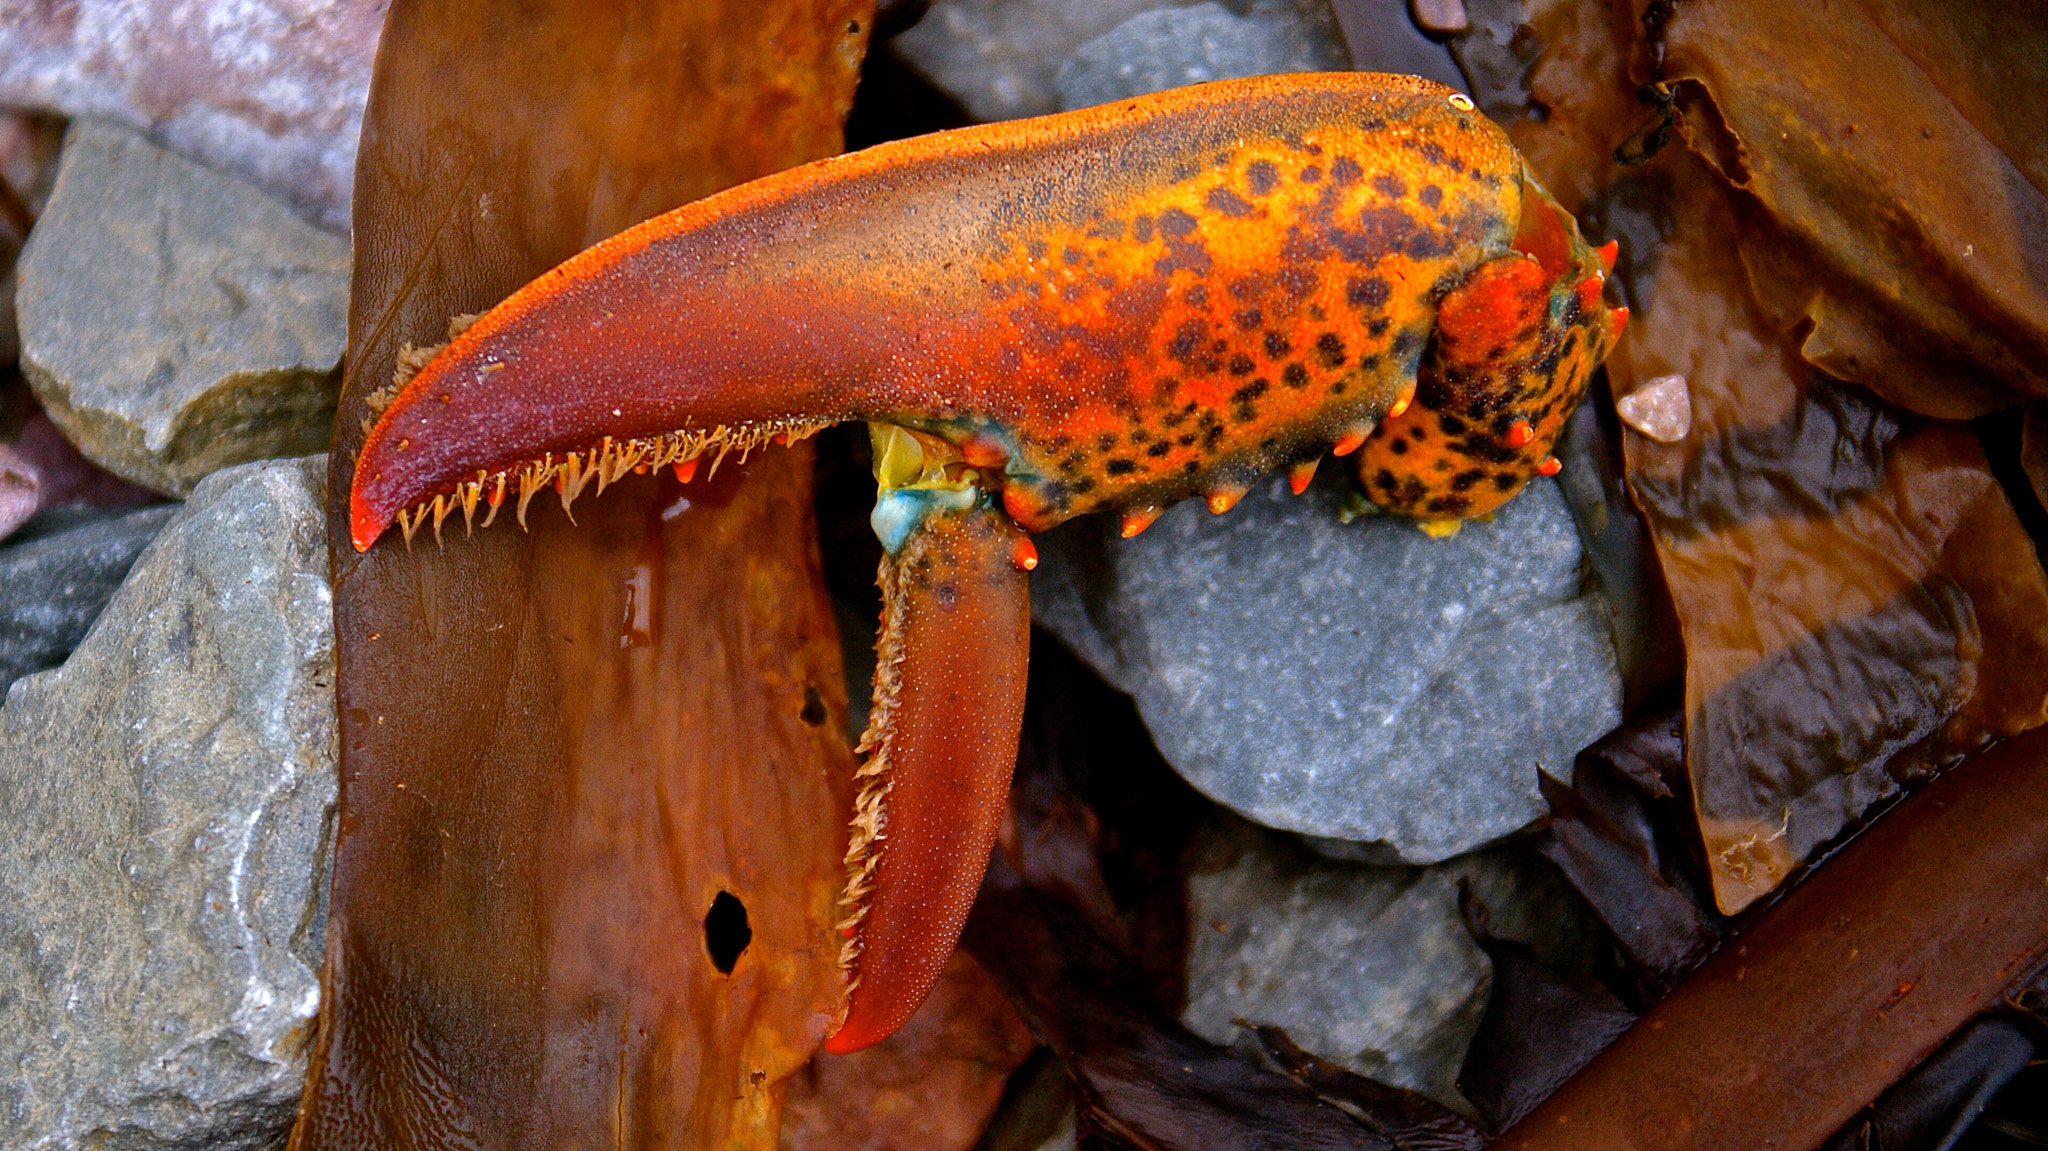 Photograph Crab Claw by Zack Parton on 500px